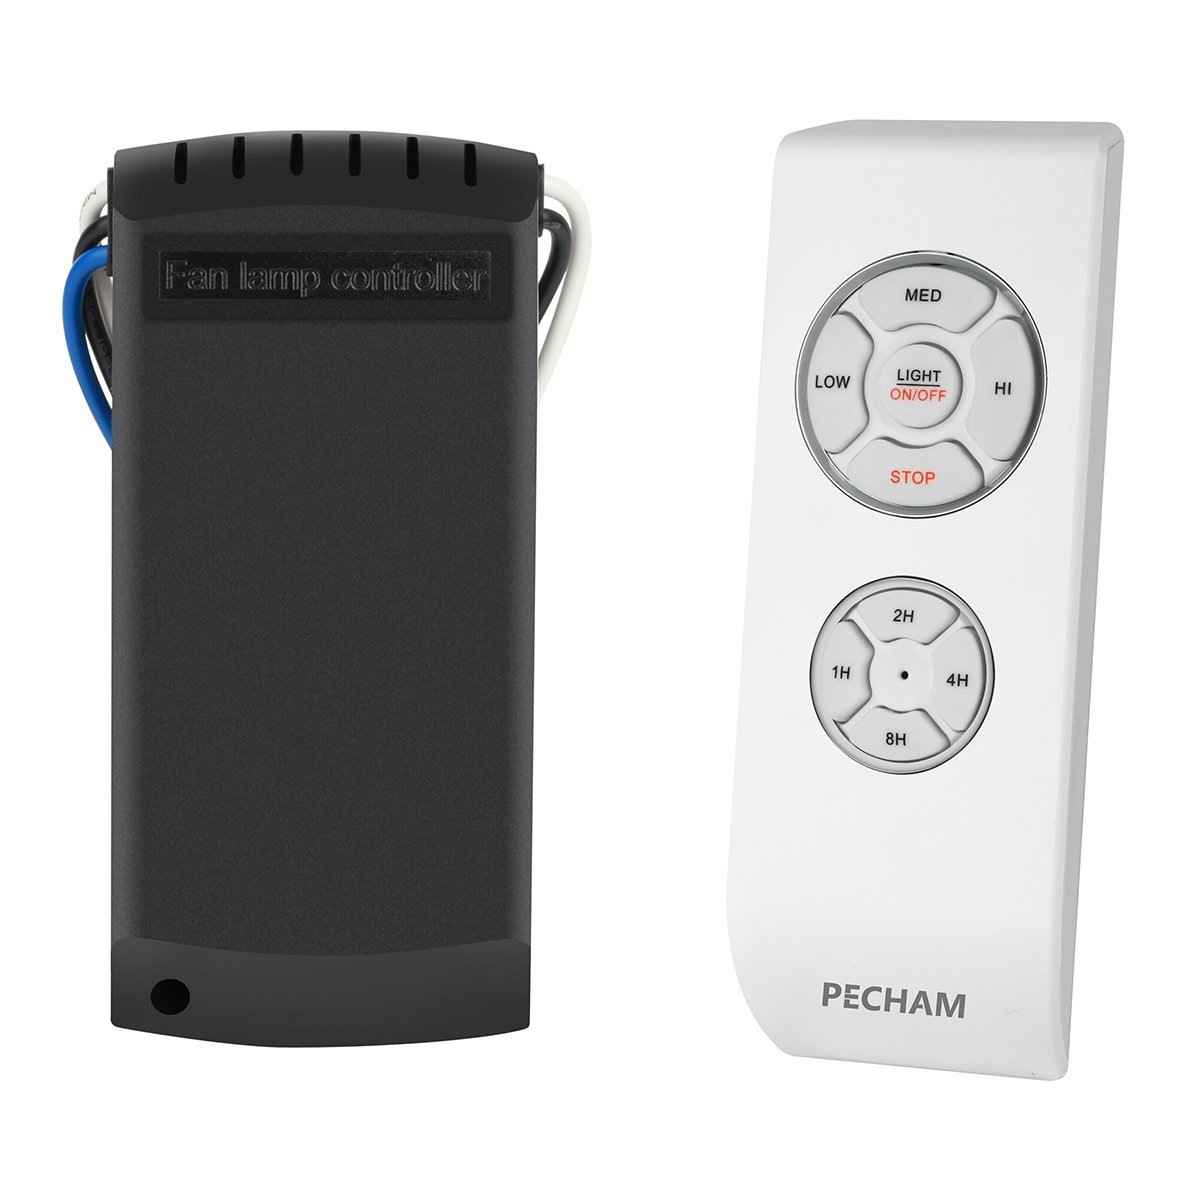 Universal Remote Control for Ceiling Fan